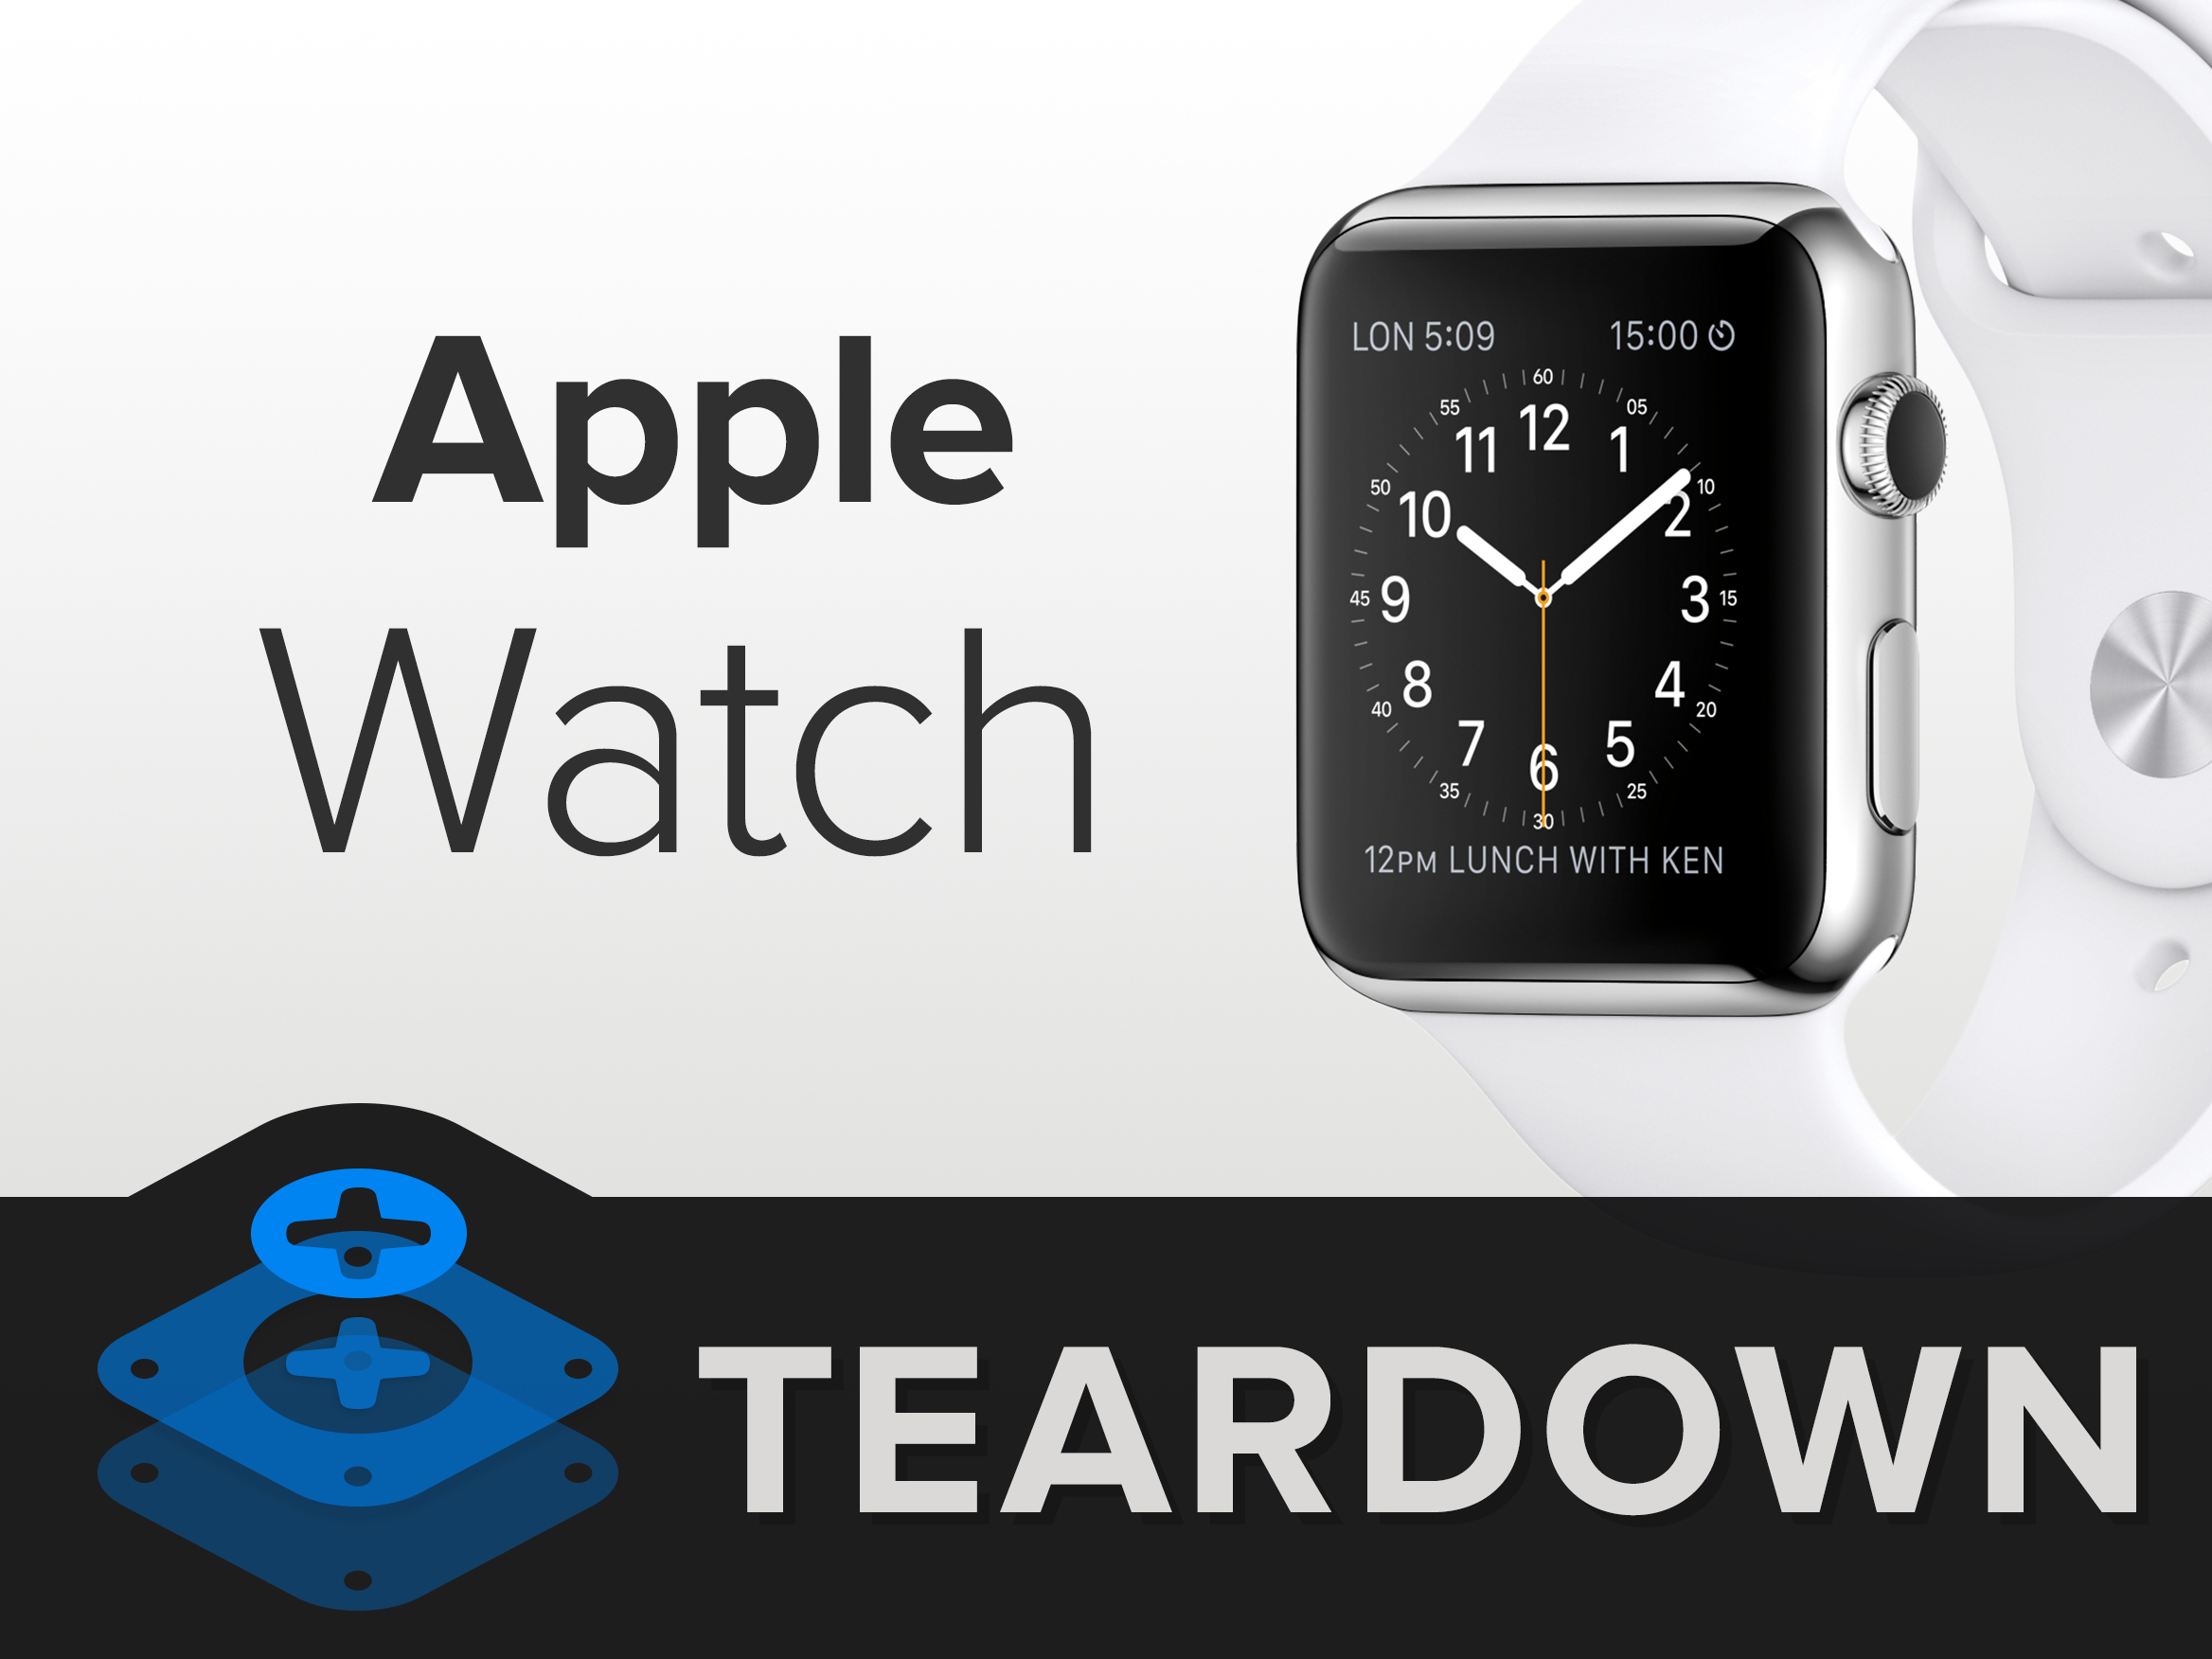 Apple Watch Teardown Ifixit Induction Heater Circuit Full Explanation Schematic Youtube